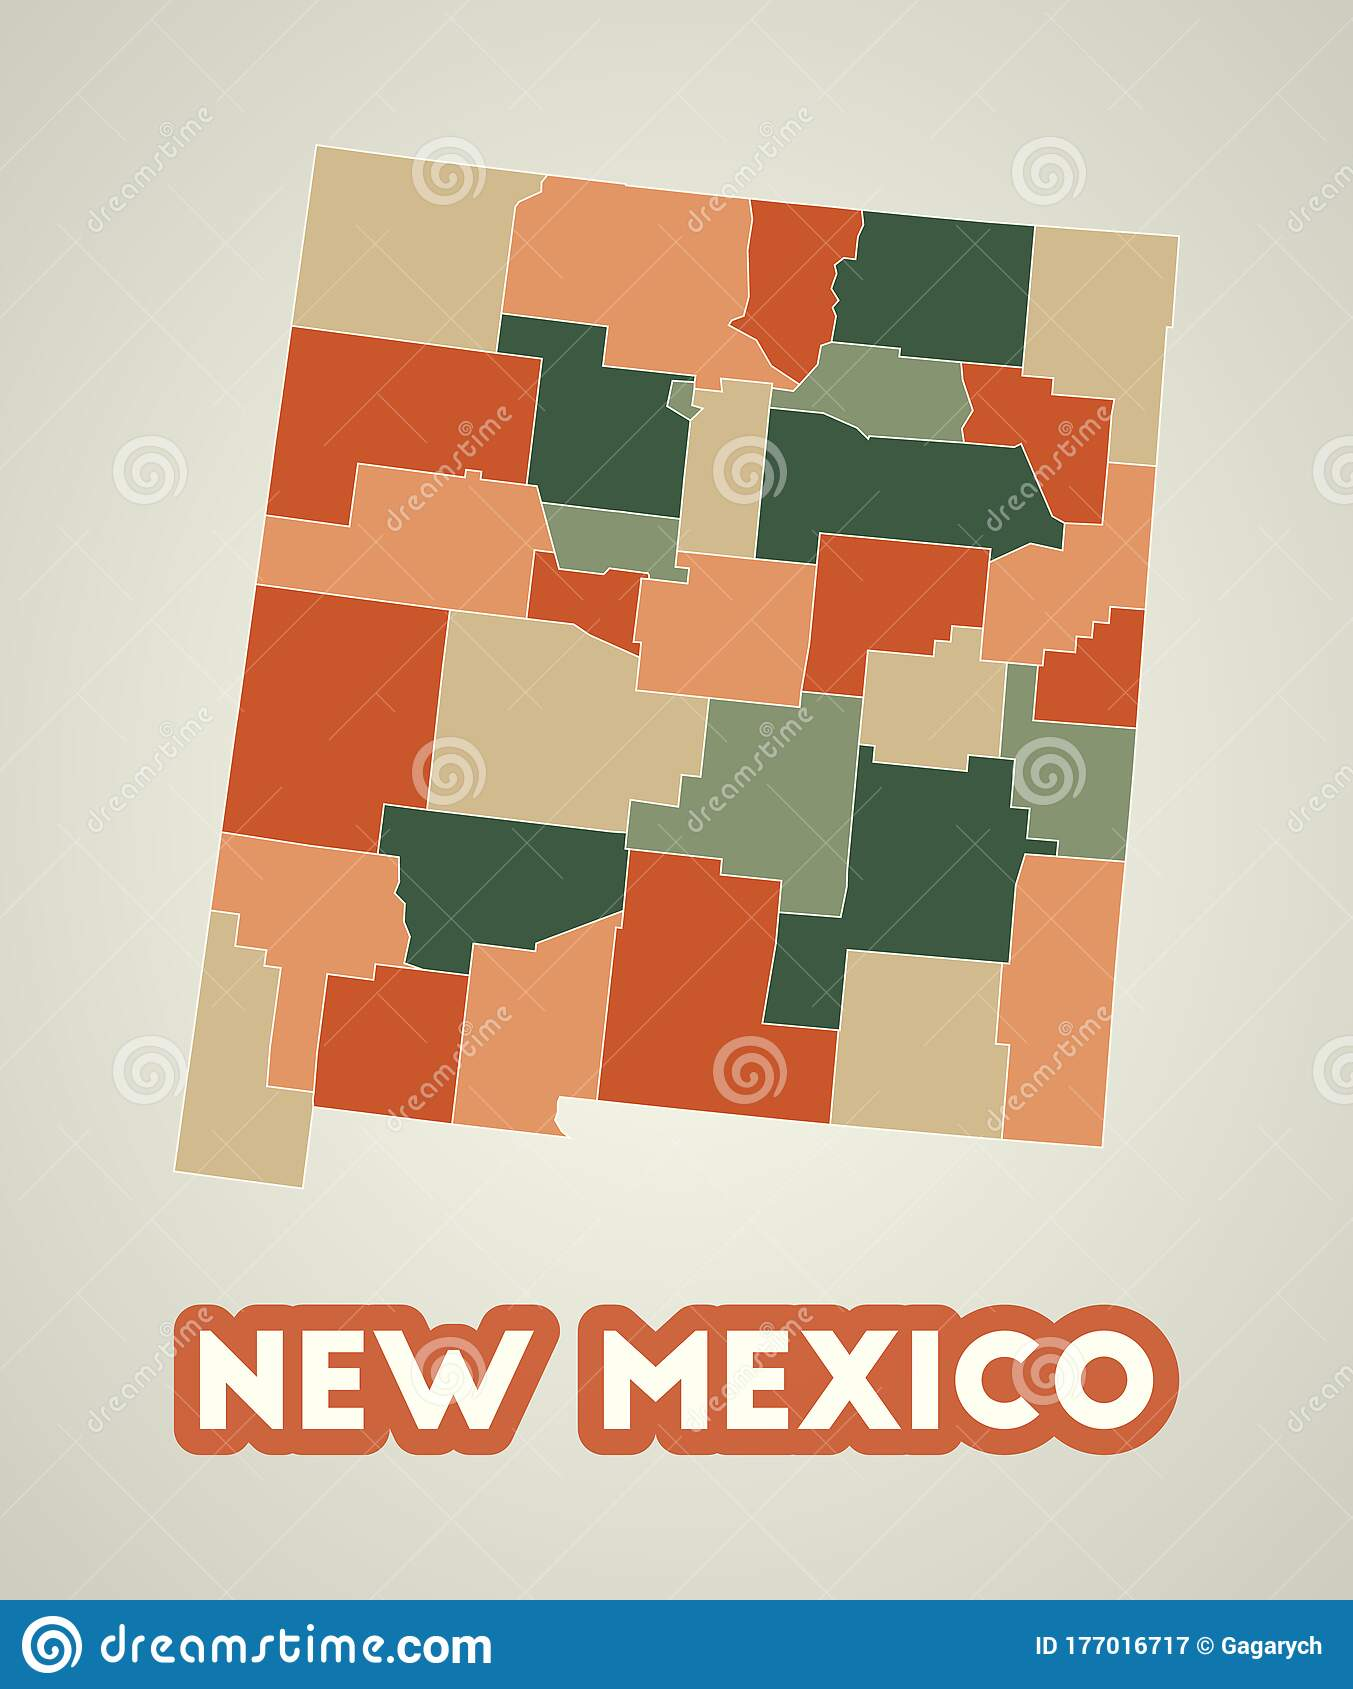 new mexico poster in retro style stock vector illustration of country style 177016717